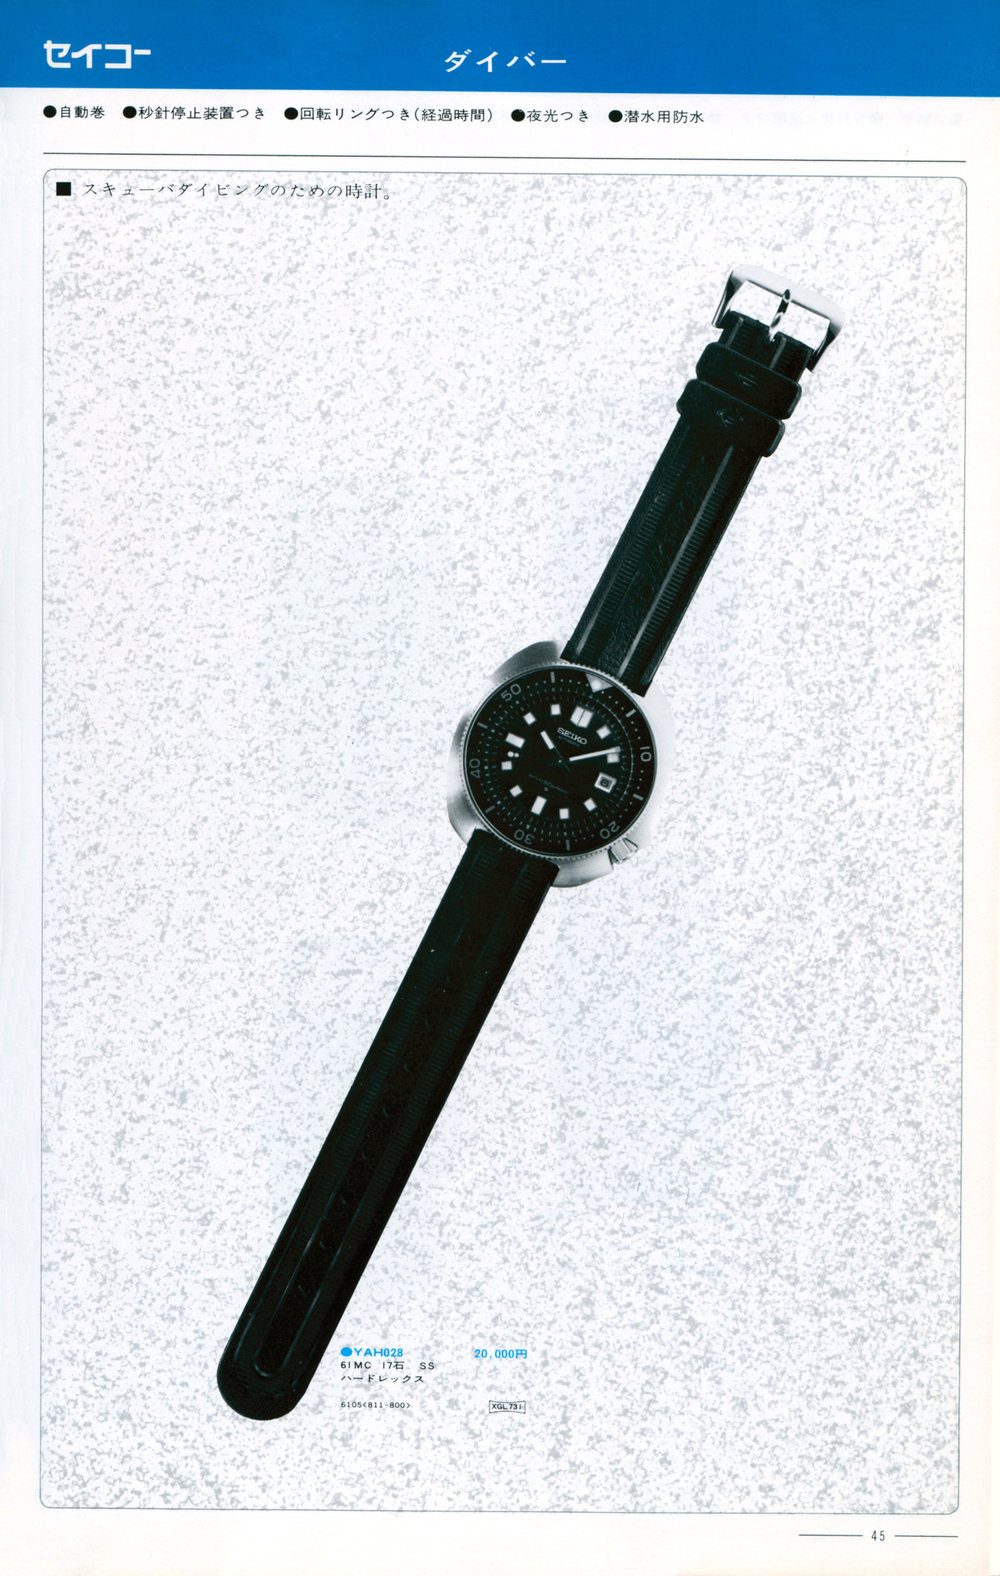 1976 Vol.1 Seiko JDM Catalog